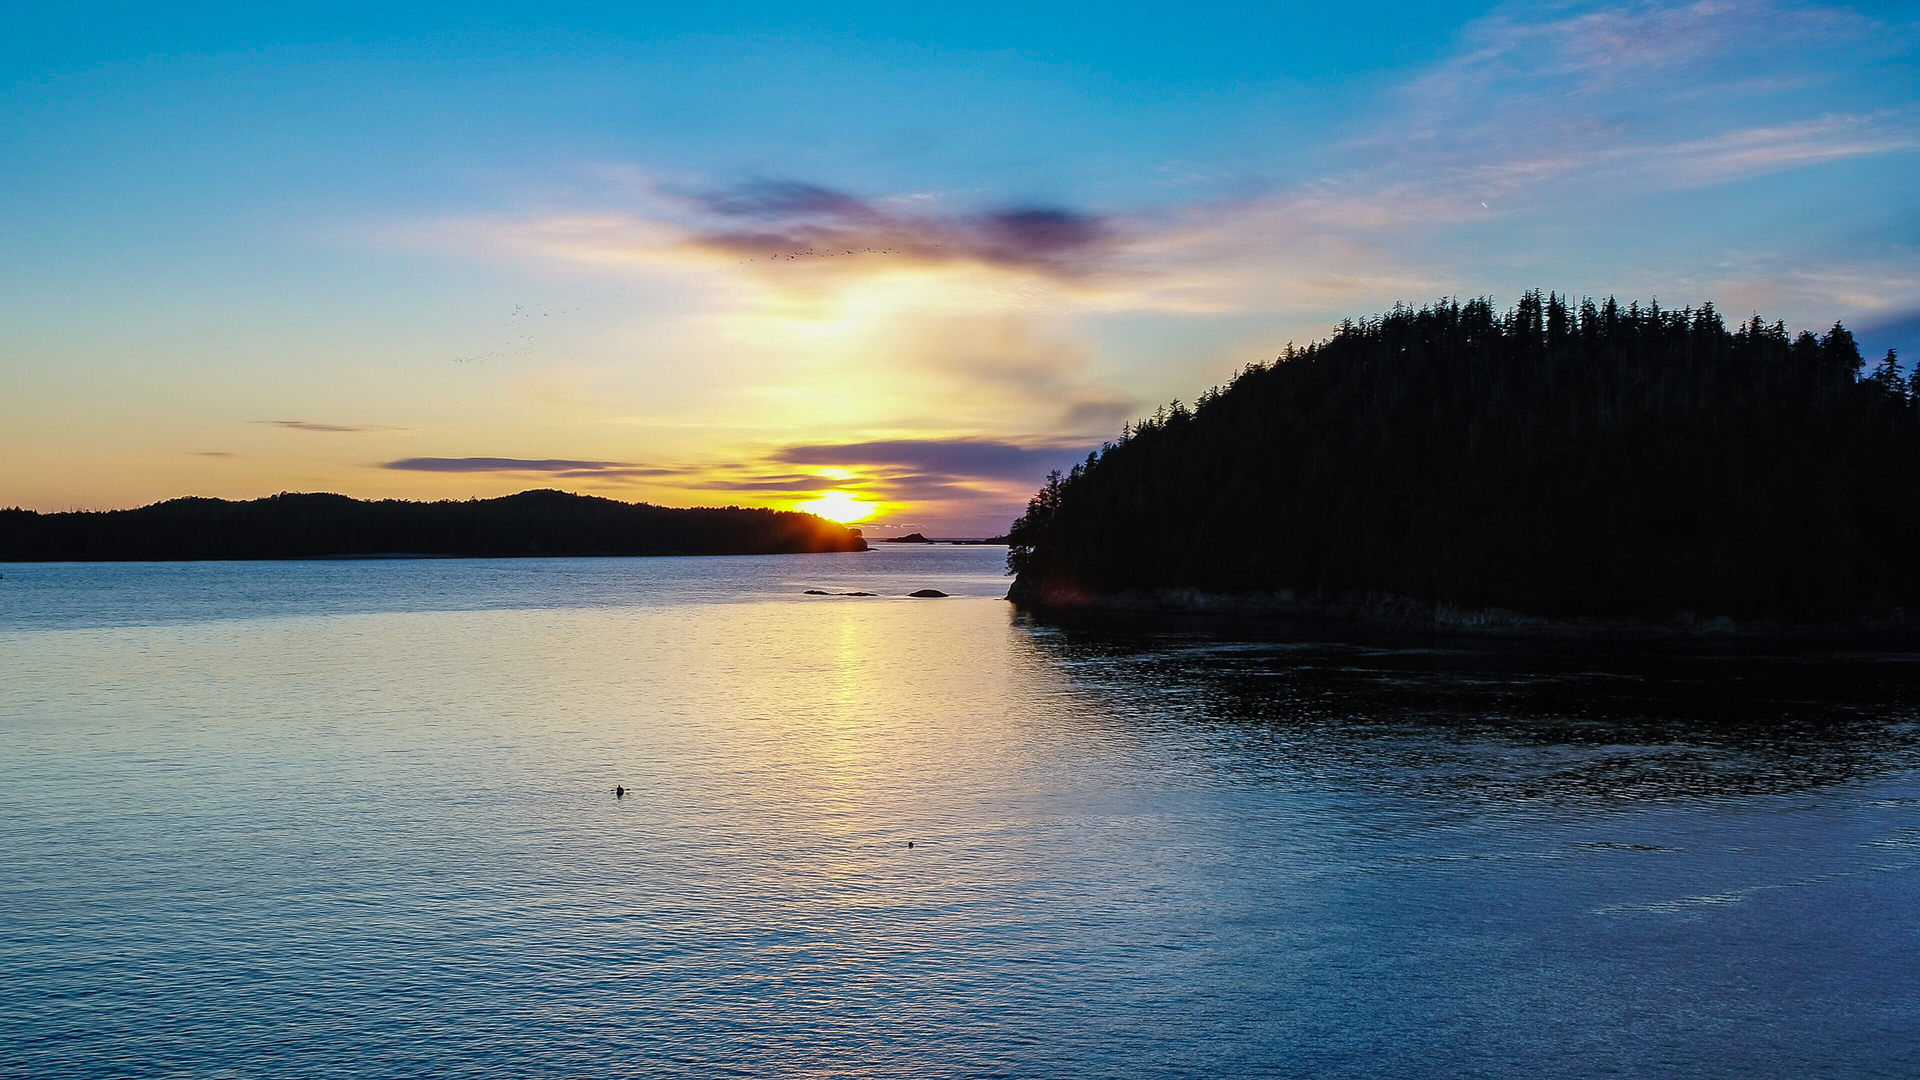 Sunset at 210 Neill Street, Tofino, Port Alberni and West Coast